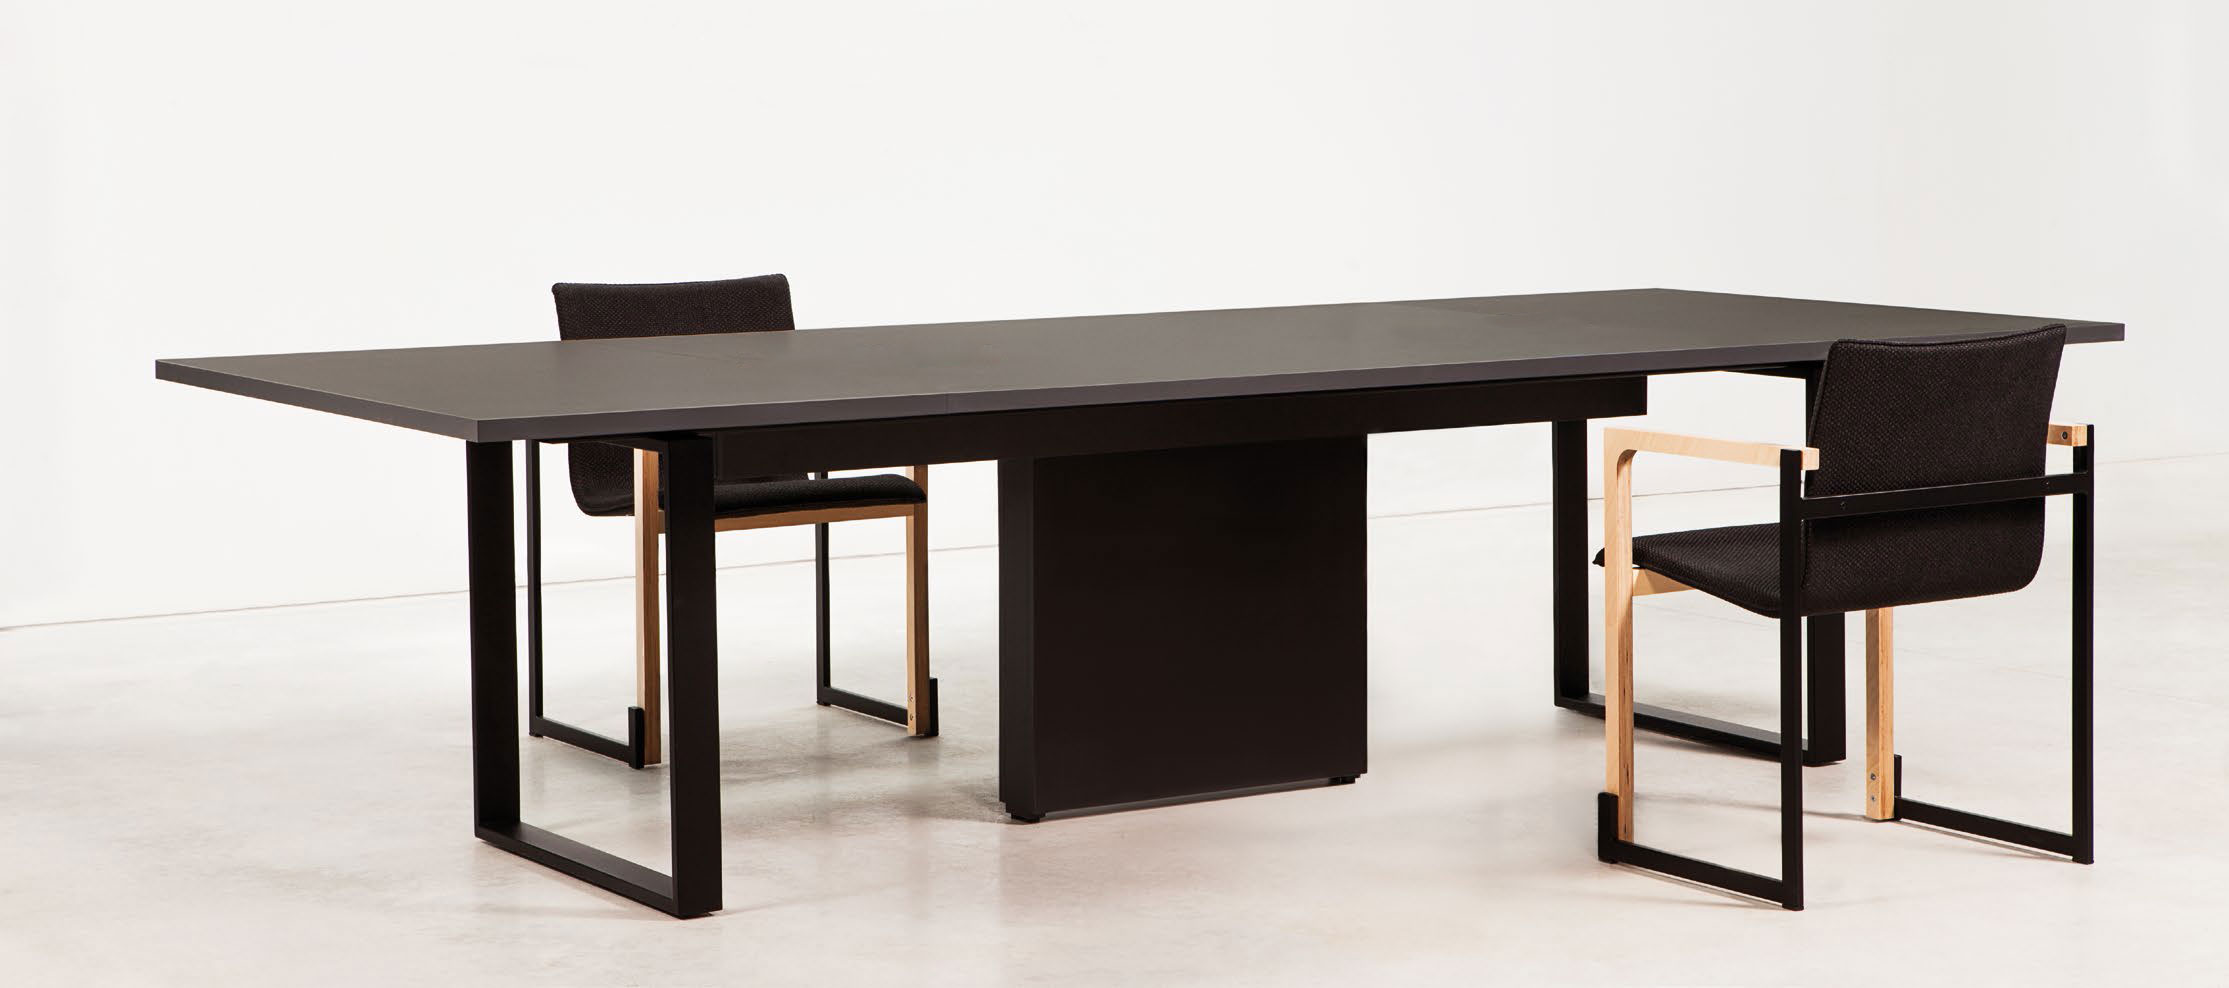 Table de réunion design Bat